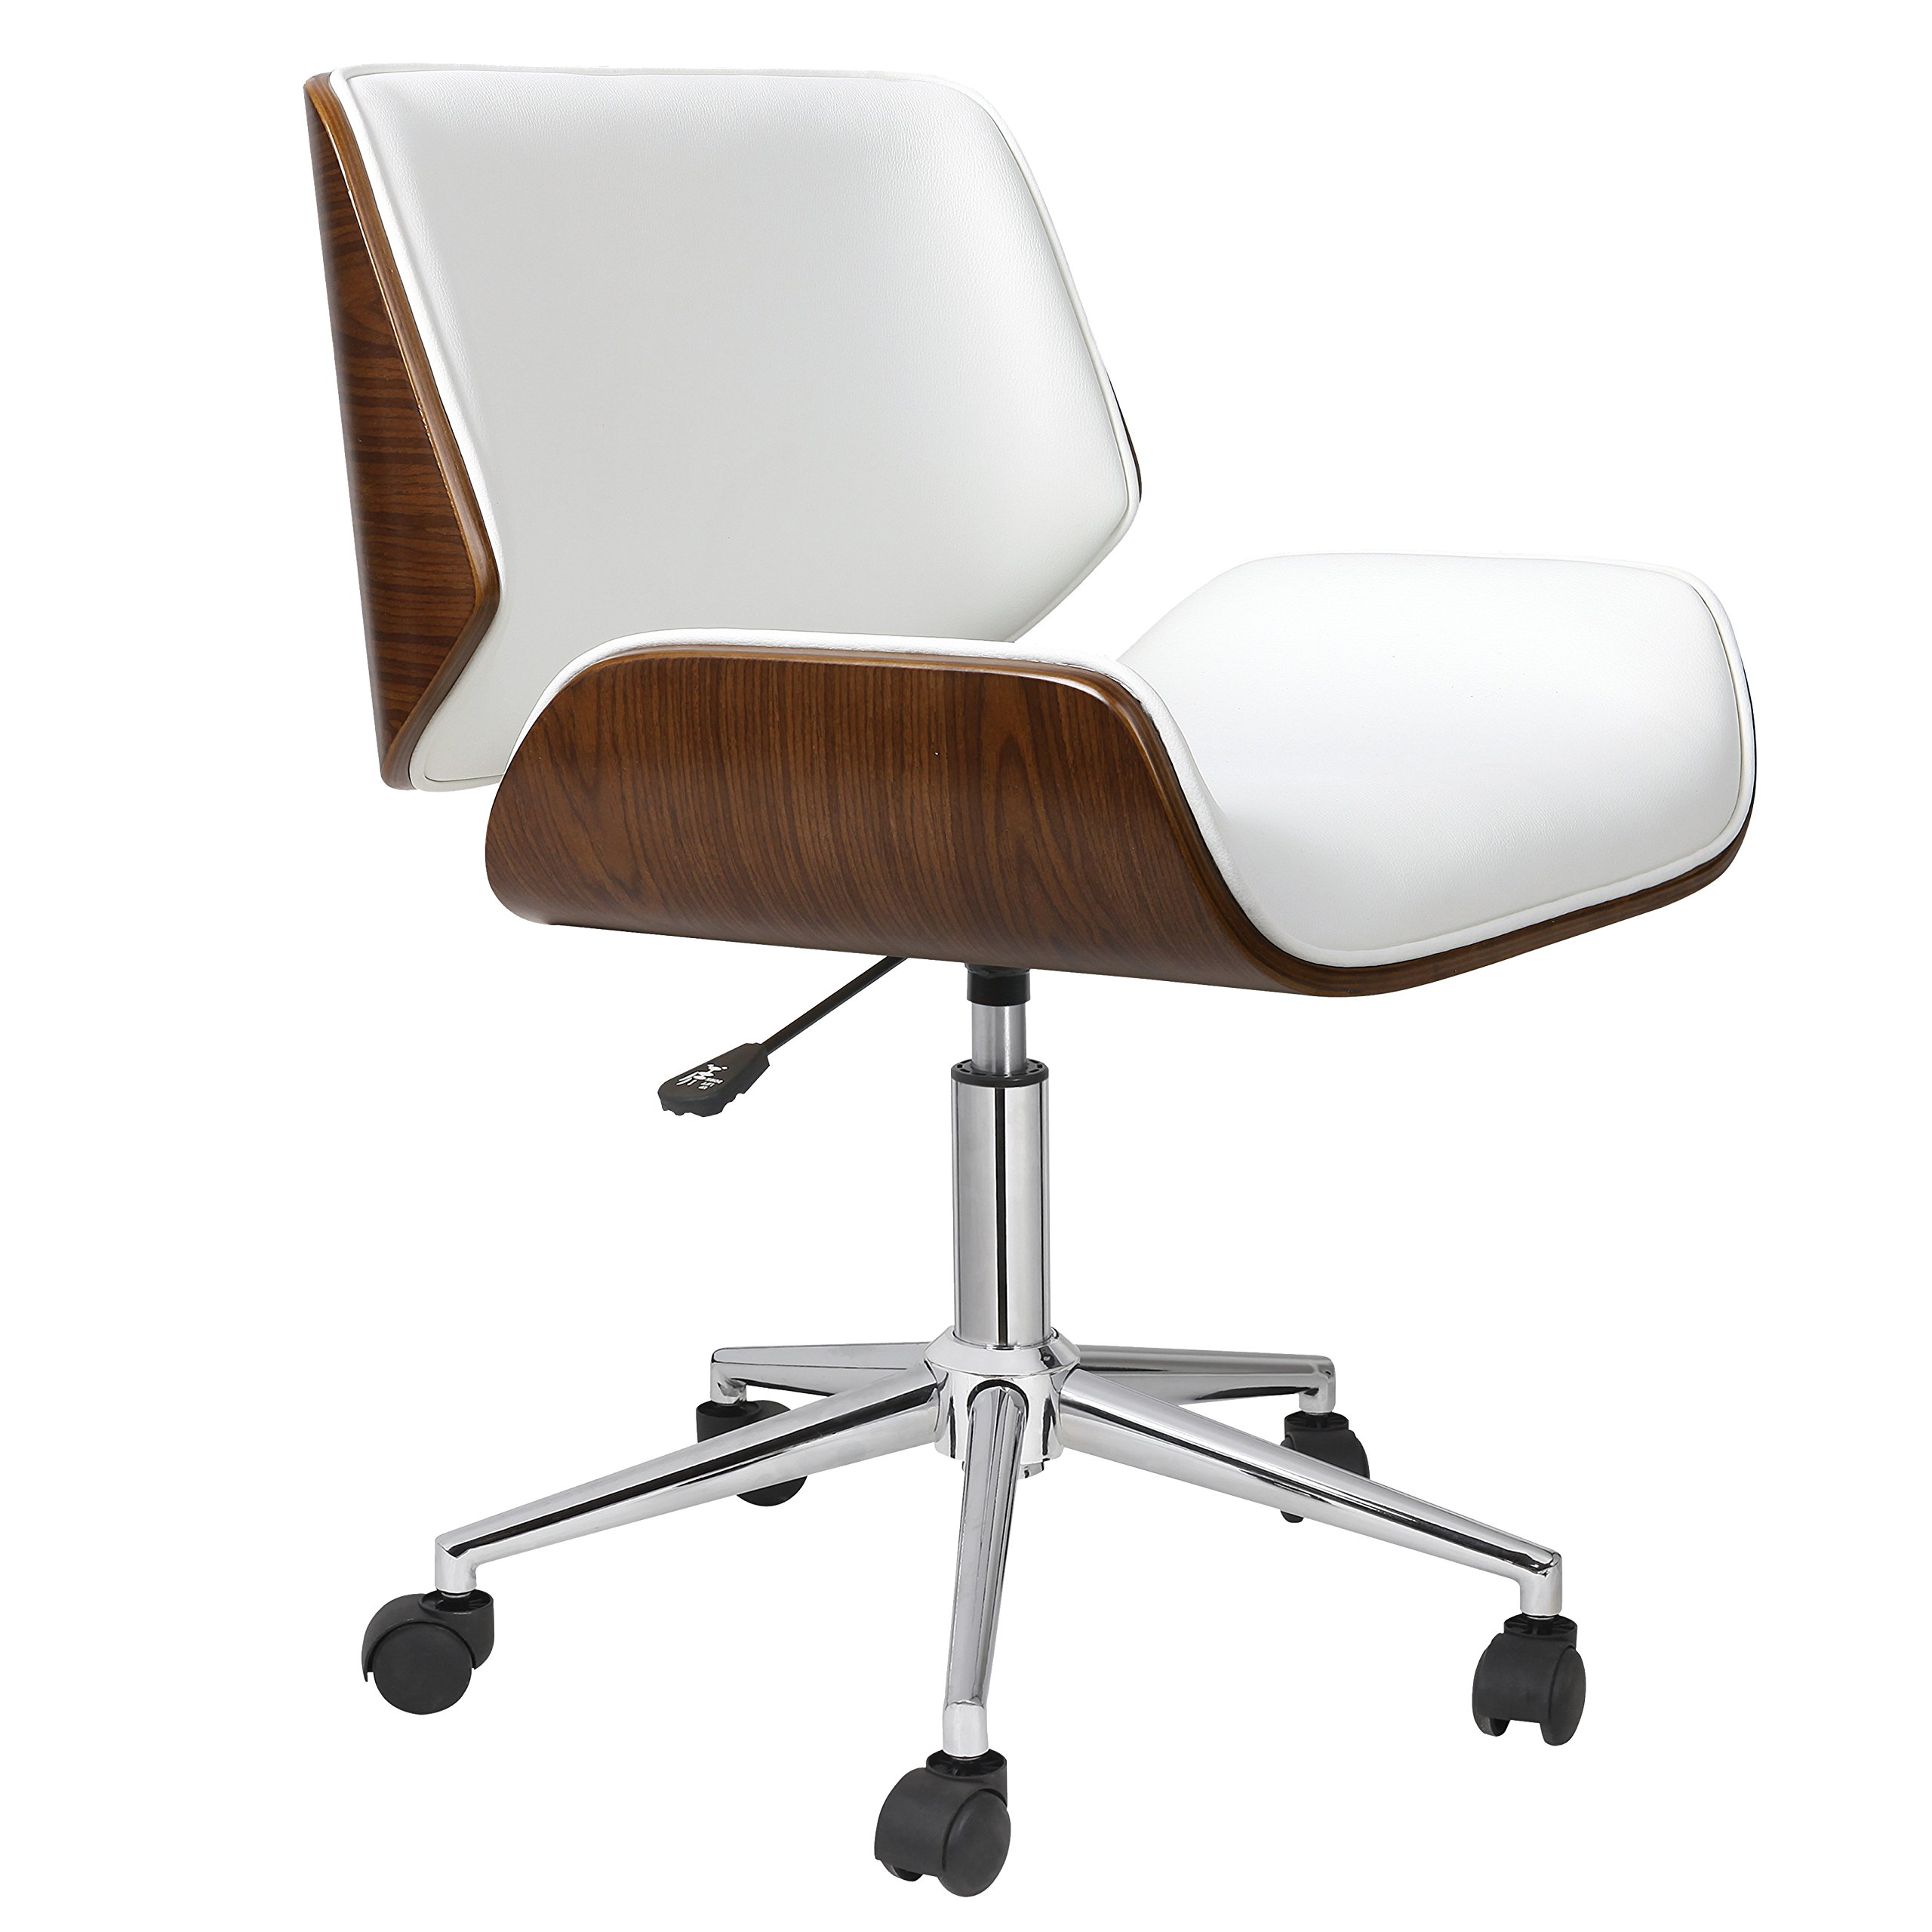 Porthos Home KCH019A WHT Dove Office Chairs in Mid-Century Modern Design with Leather Upholstery, Wooden Accents, Stainless Steel Legs, Roller Wheels & Adjustable Height, White by Porthos Home